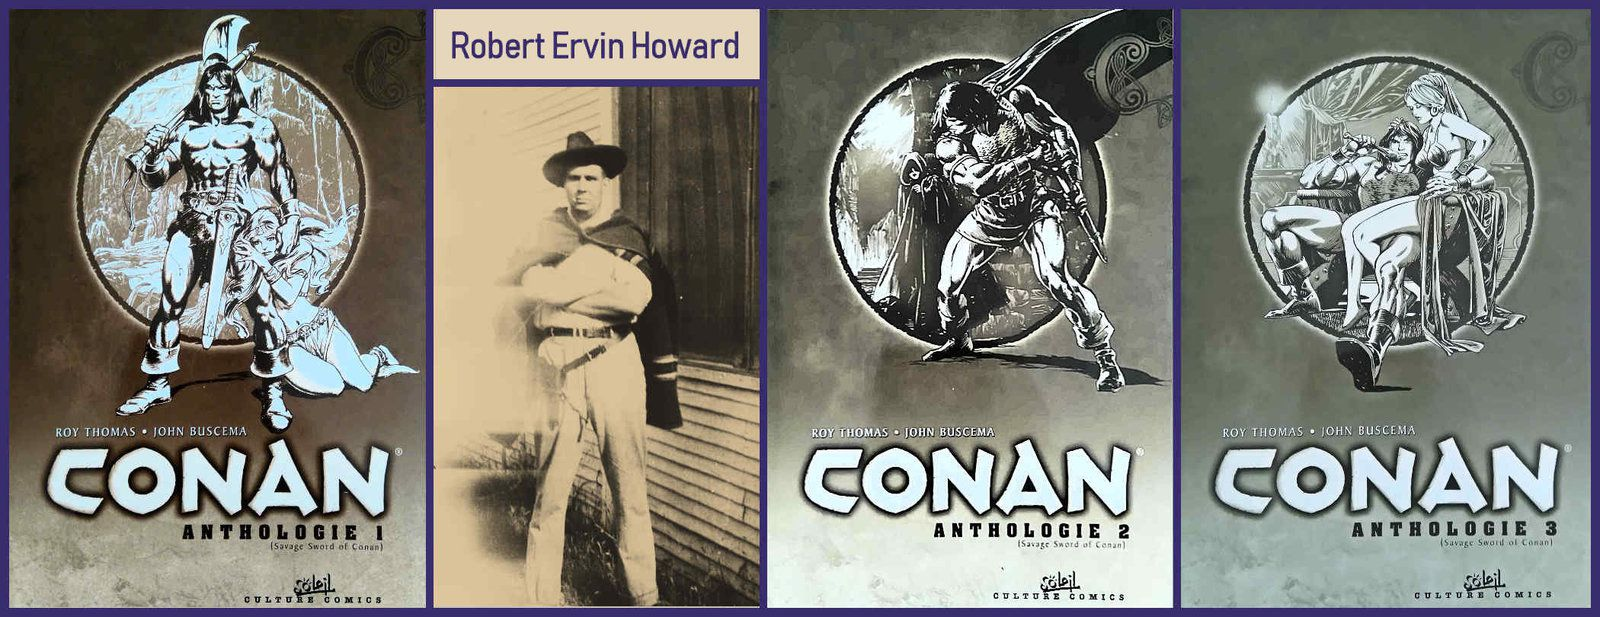 CONAN (Anthologie 1, 2, 3)